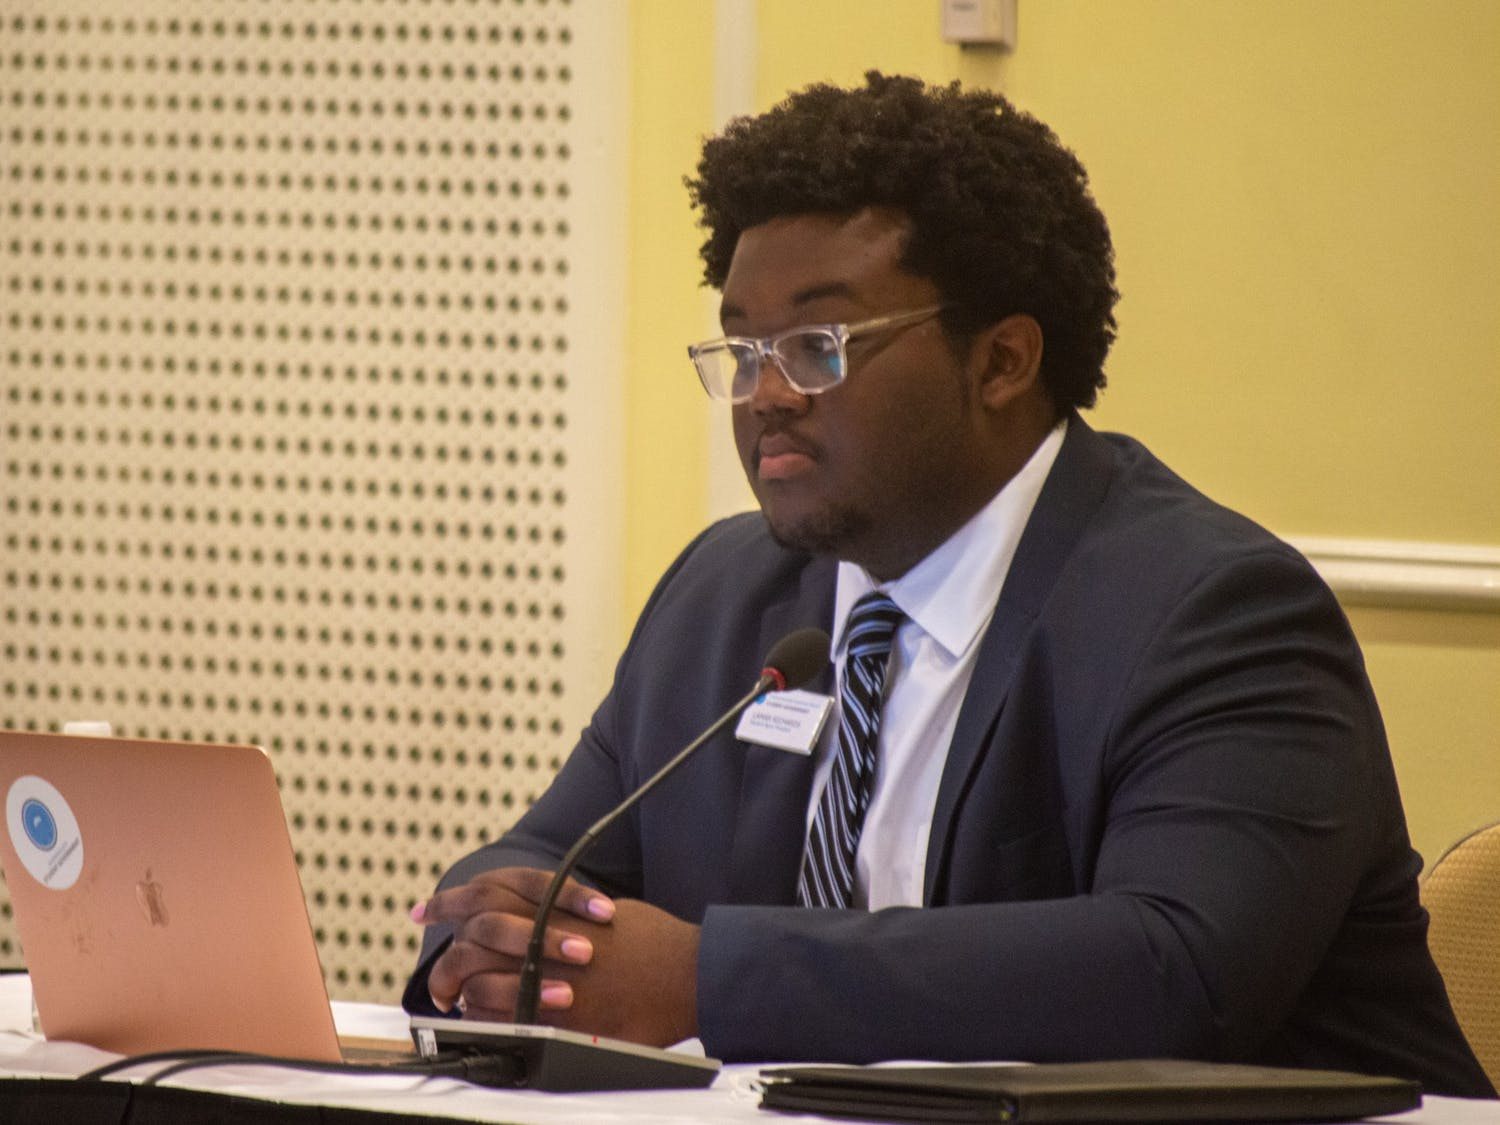 UNC Student Body President Lamar Richards attends the Board of Trustees meeting at the Carolina Inn on Thursday May 20, 2021.